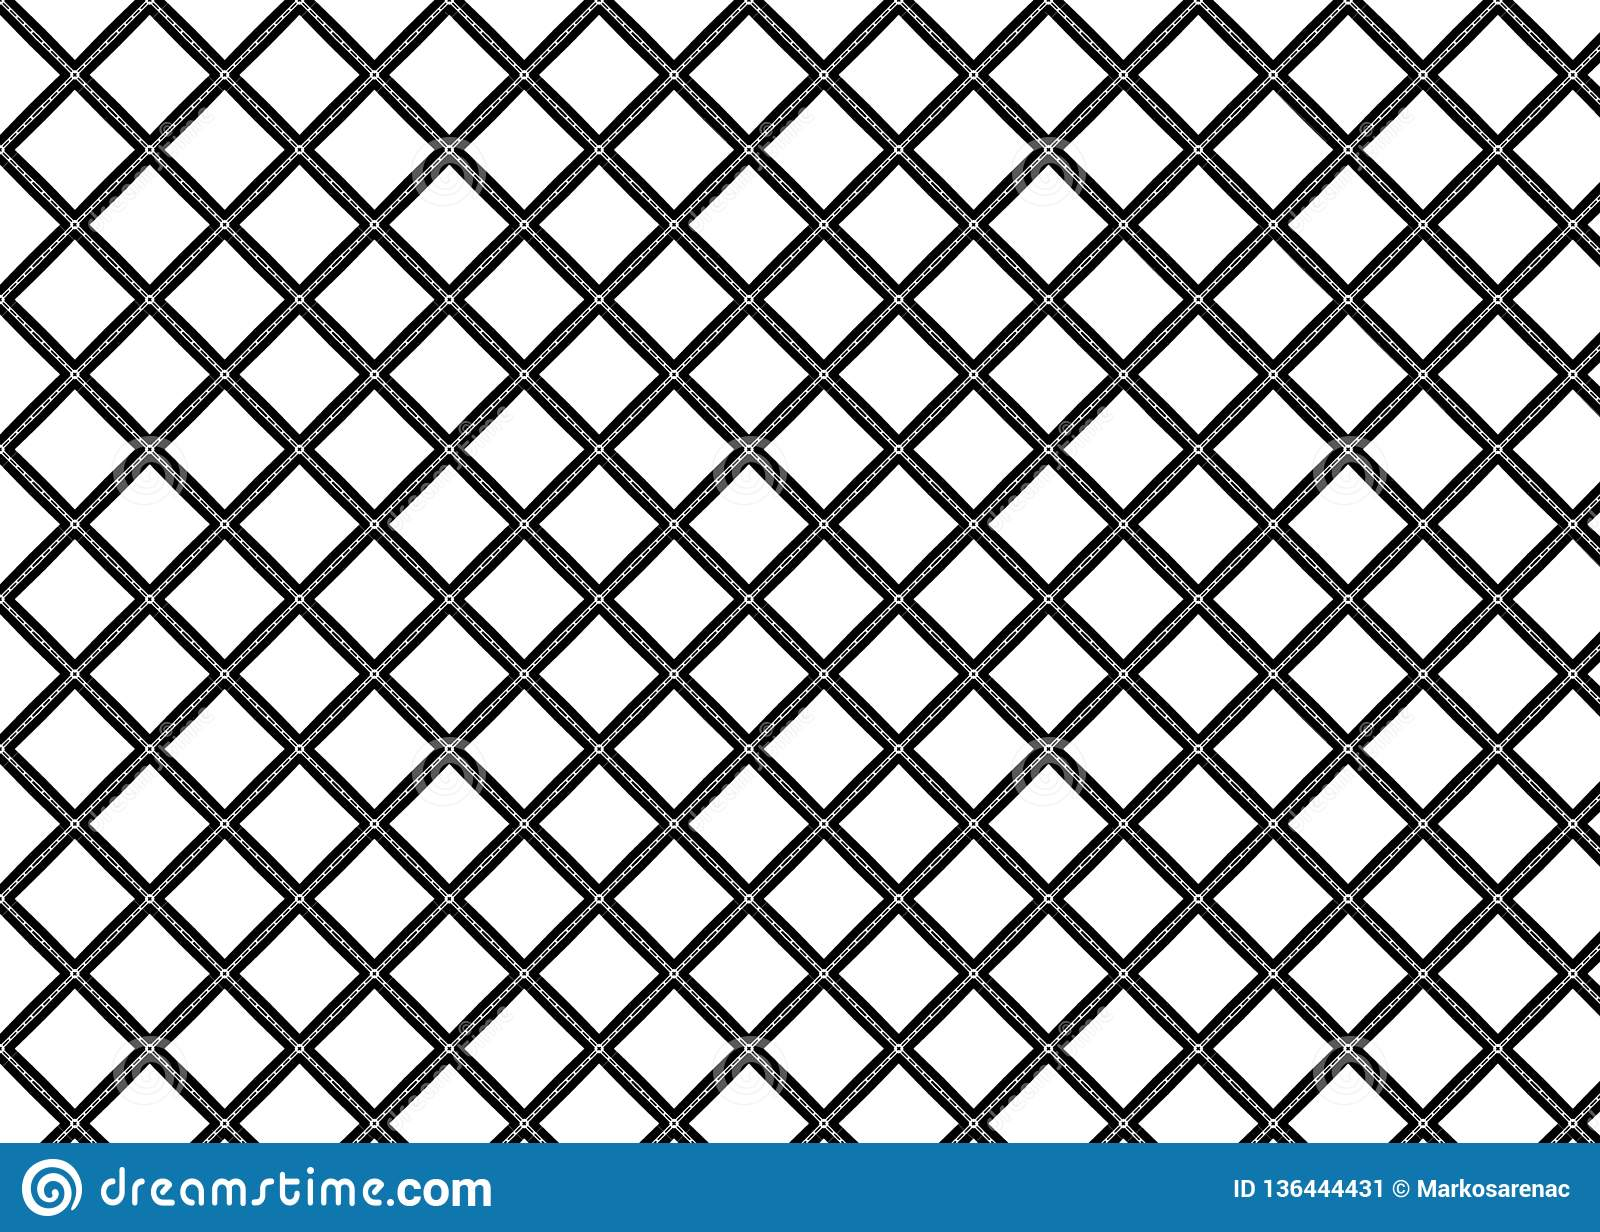 Pattern Abstract Art Shapes Deco Lines B W Stock